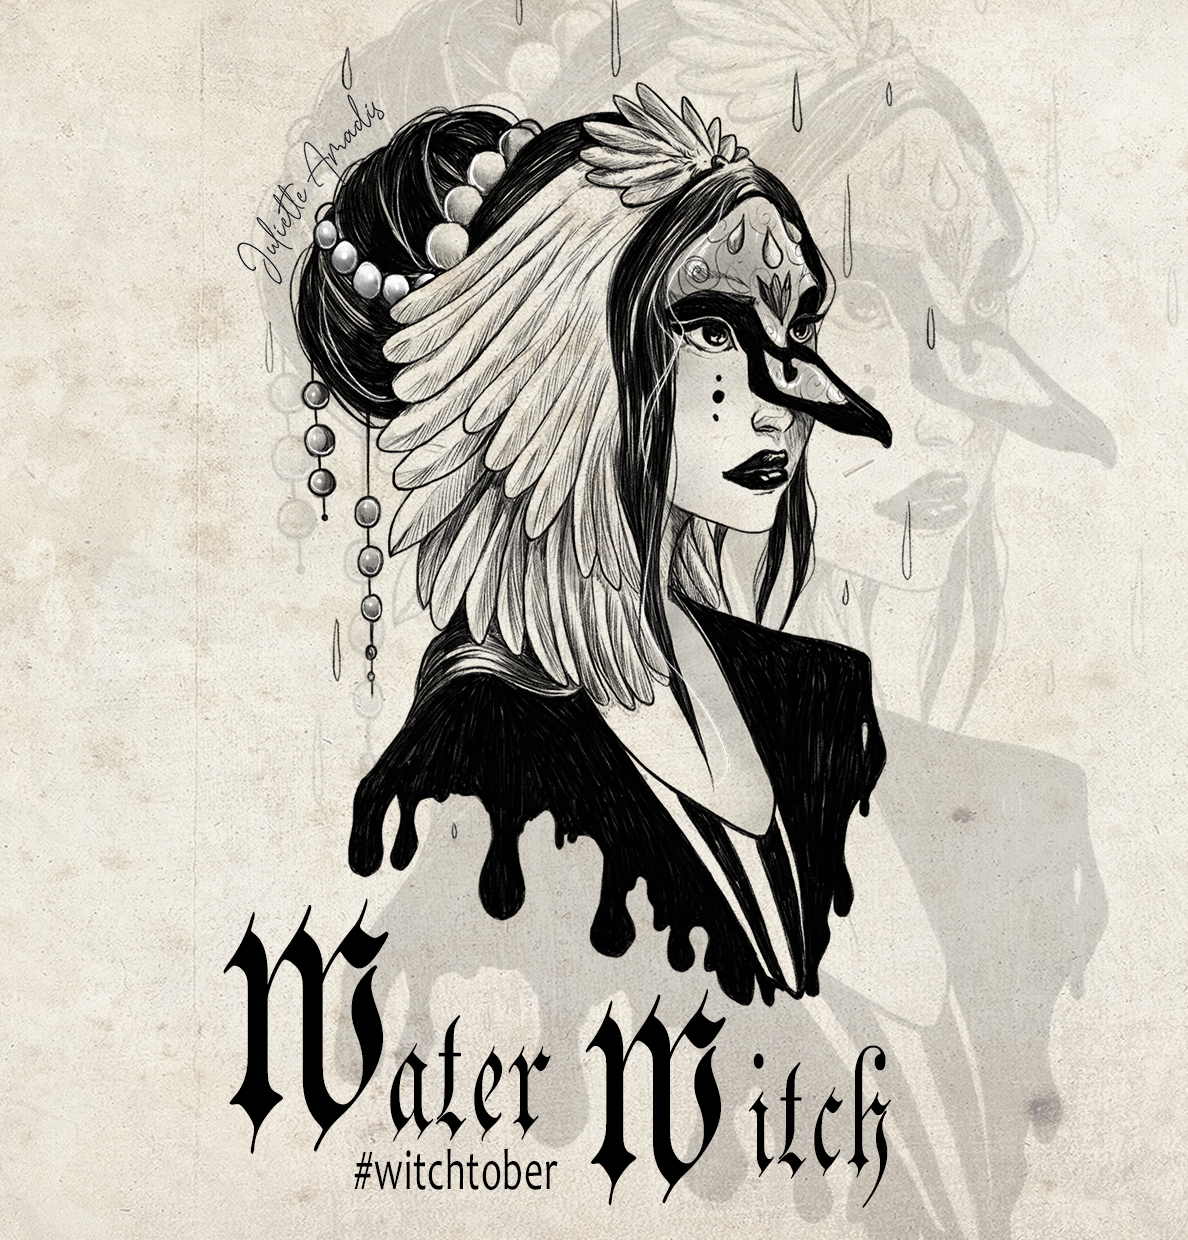 Witchtober 07 - Water Witch